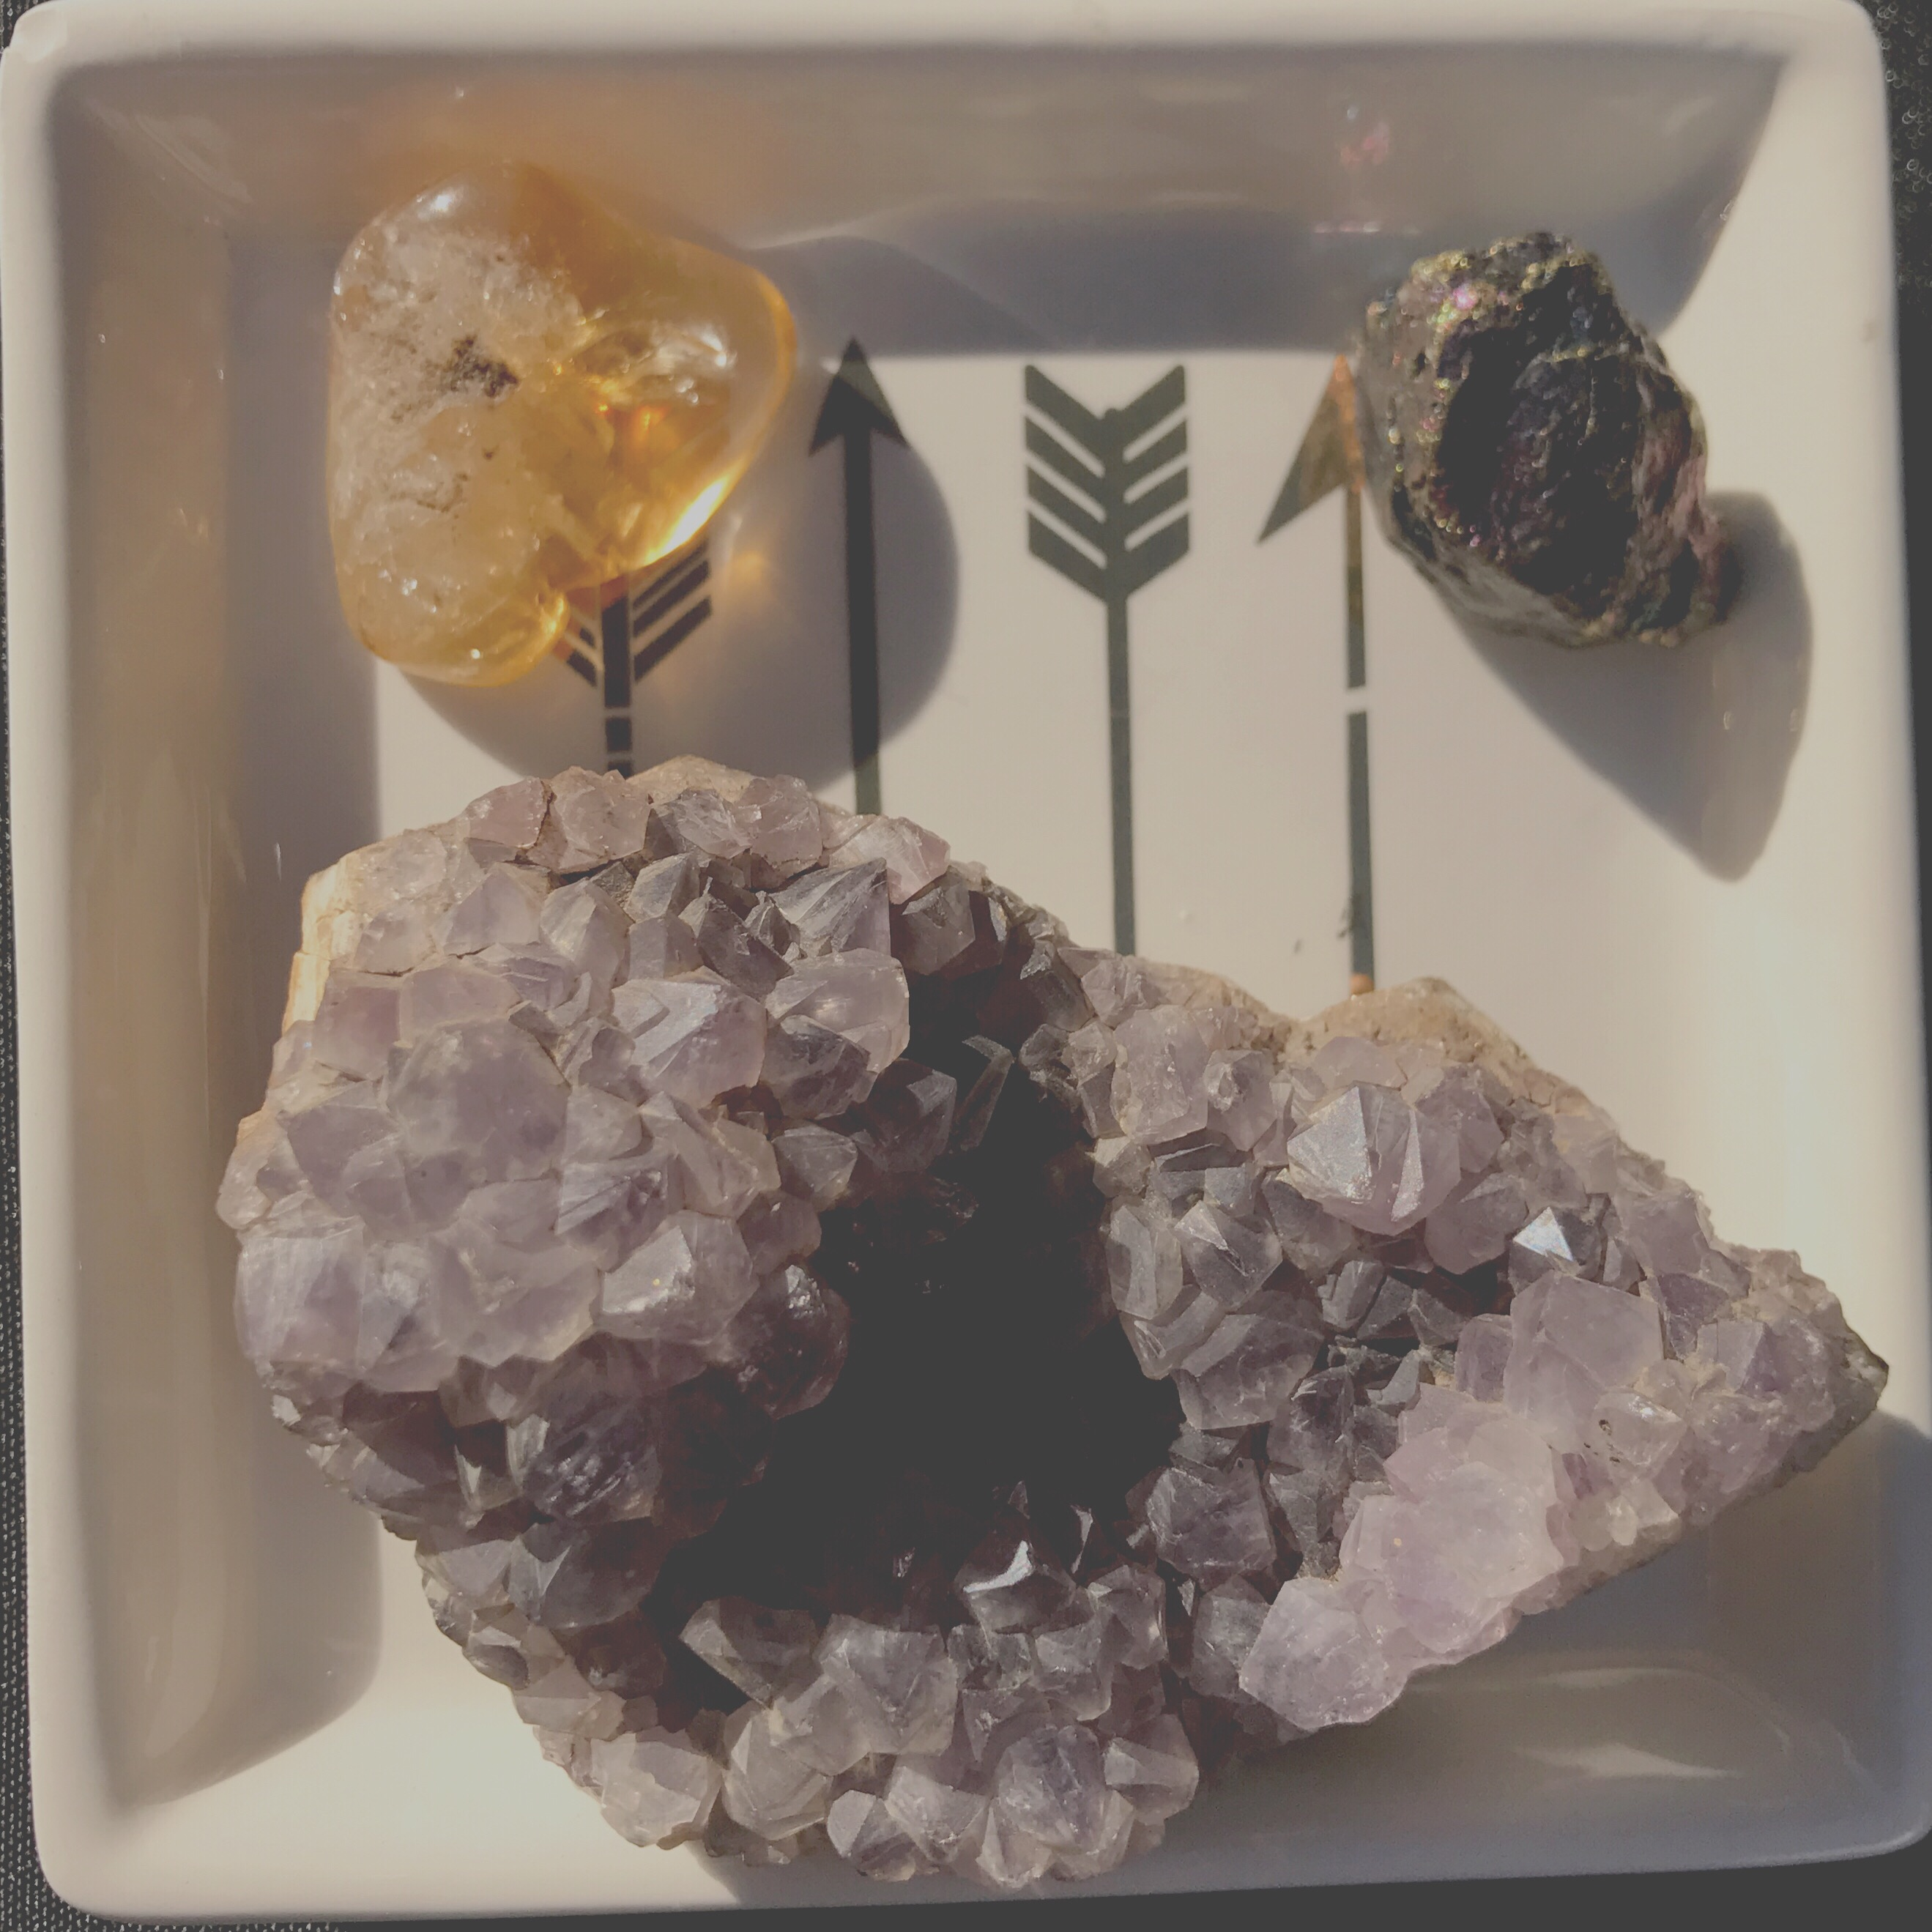 Crystals for Creativity and Productivity